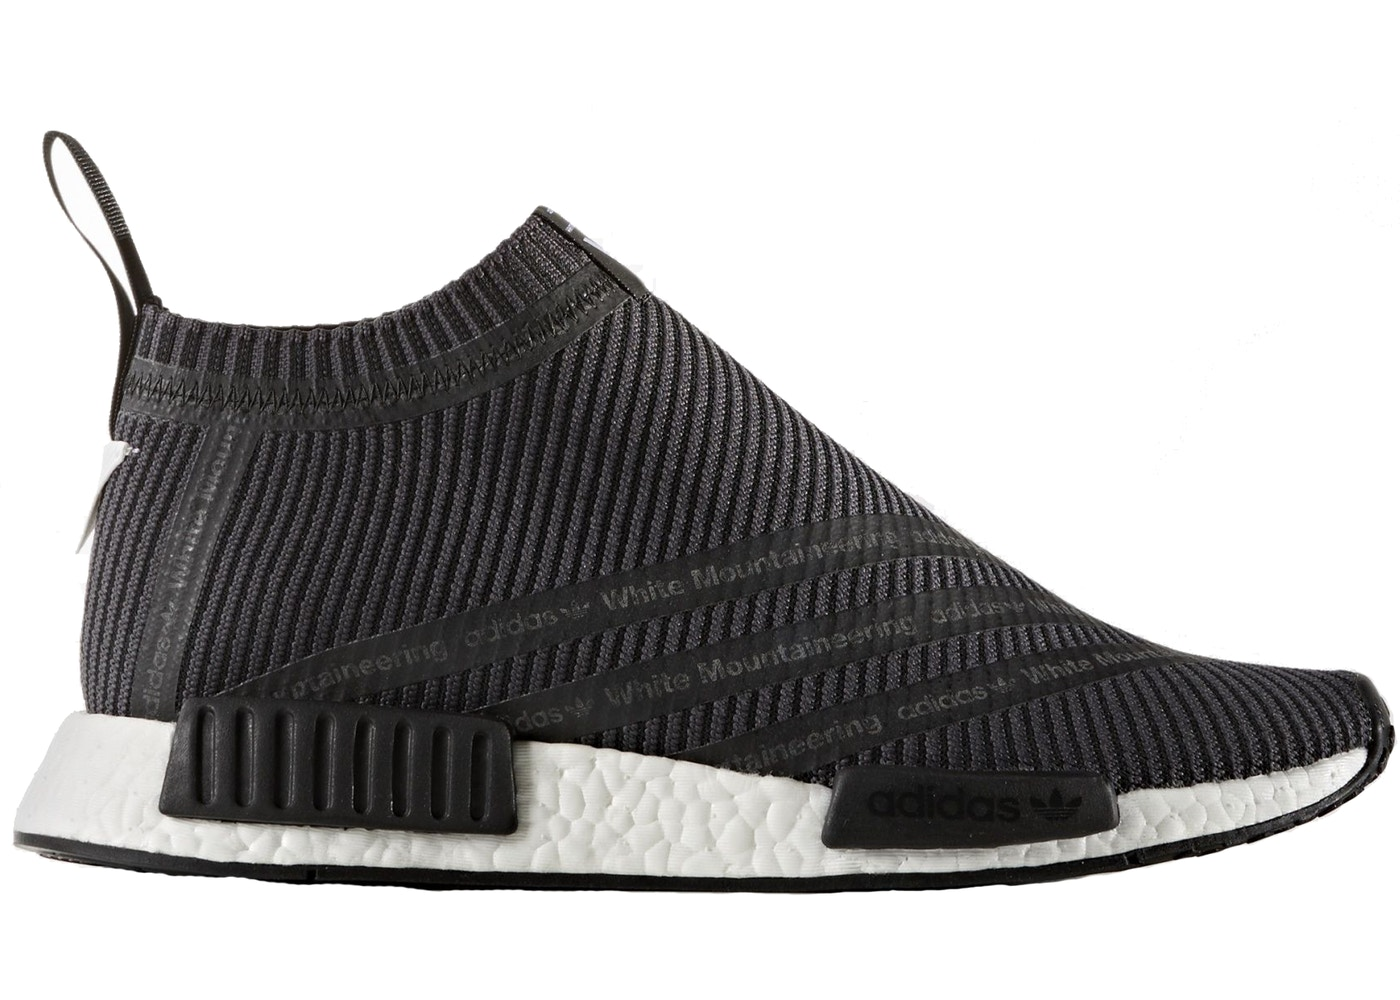 7fd9b9901 adidas NMD City Sock White Mountaineering - S80529